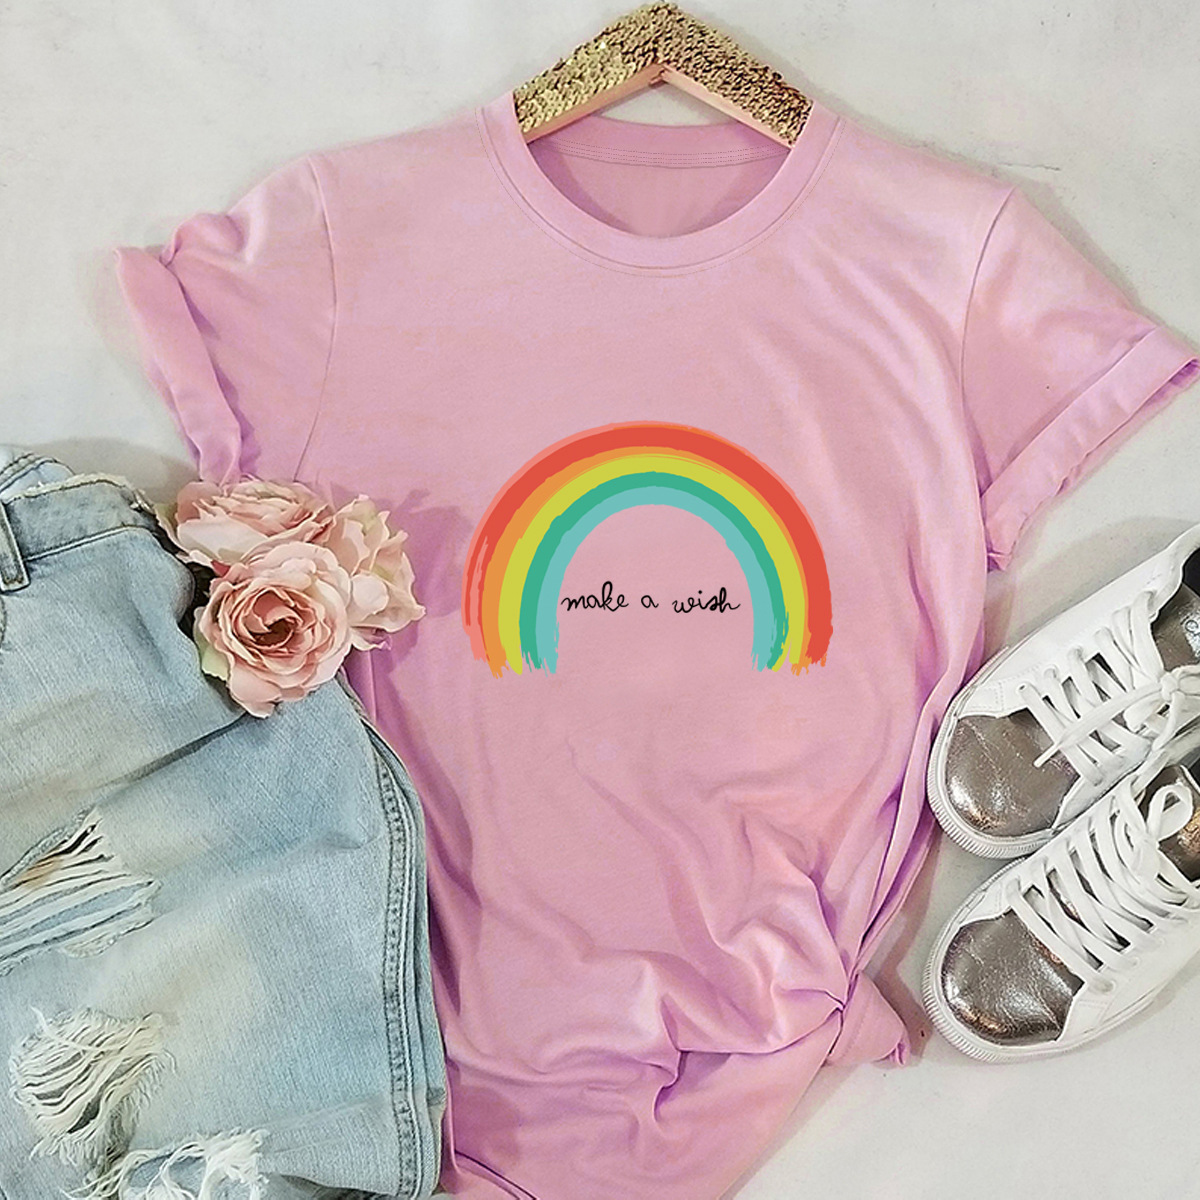 JFUNCY Rainbow Printing Women T-Shirt New 100% Cotton Woman Shirts Plus Size Summer Casual Tshirt Short Sleeve Mujer Tees Tops